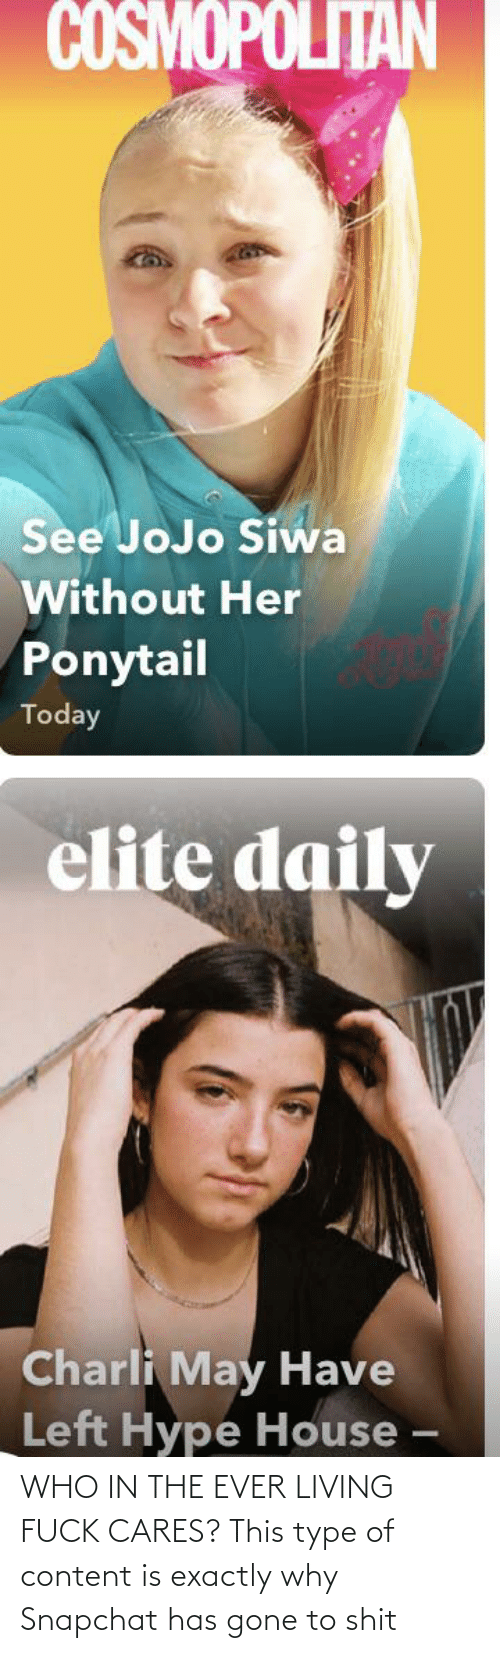 Snapchat: WHO IN THE EVER LIVING FUCK CARES? This type of content is exactly why Snapchat has gone to shit